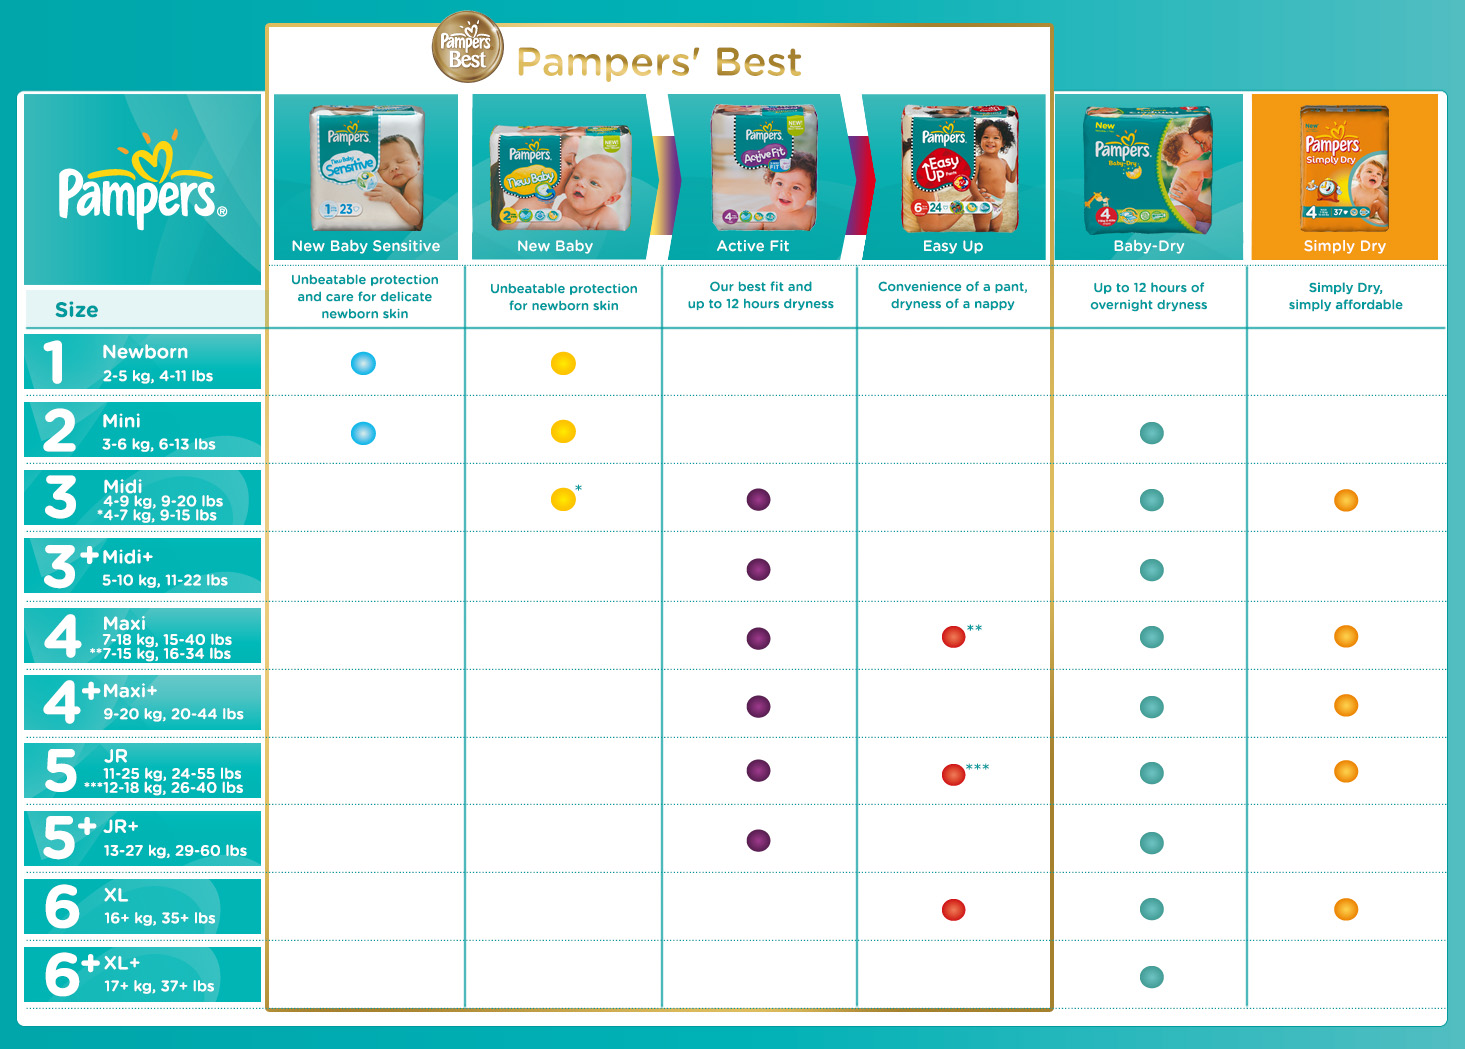 Free printable pampers cruisers coupons